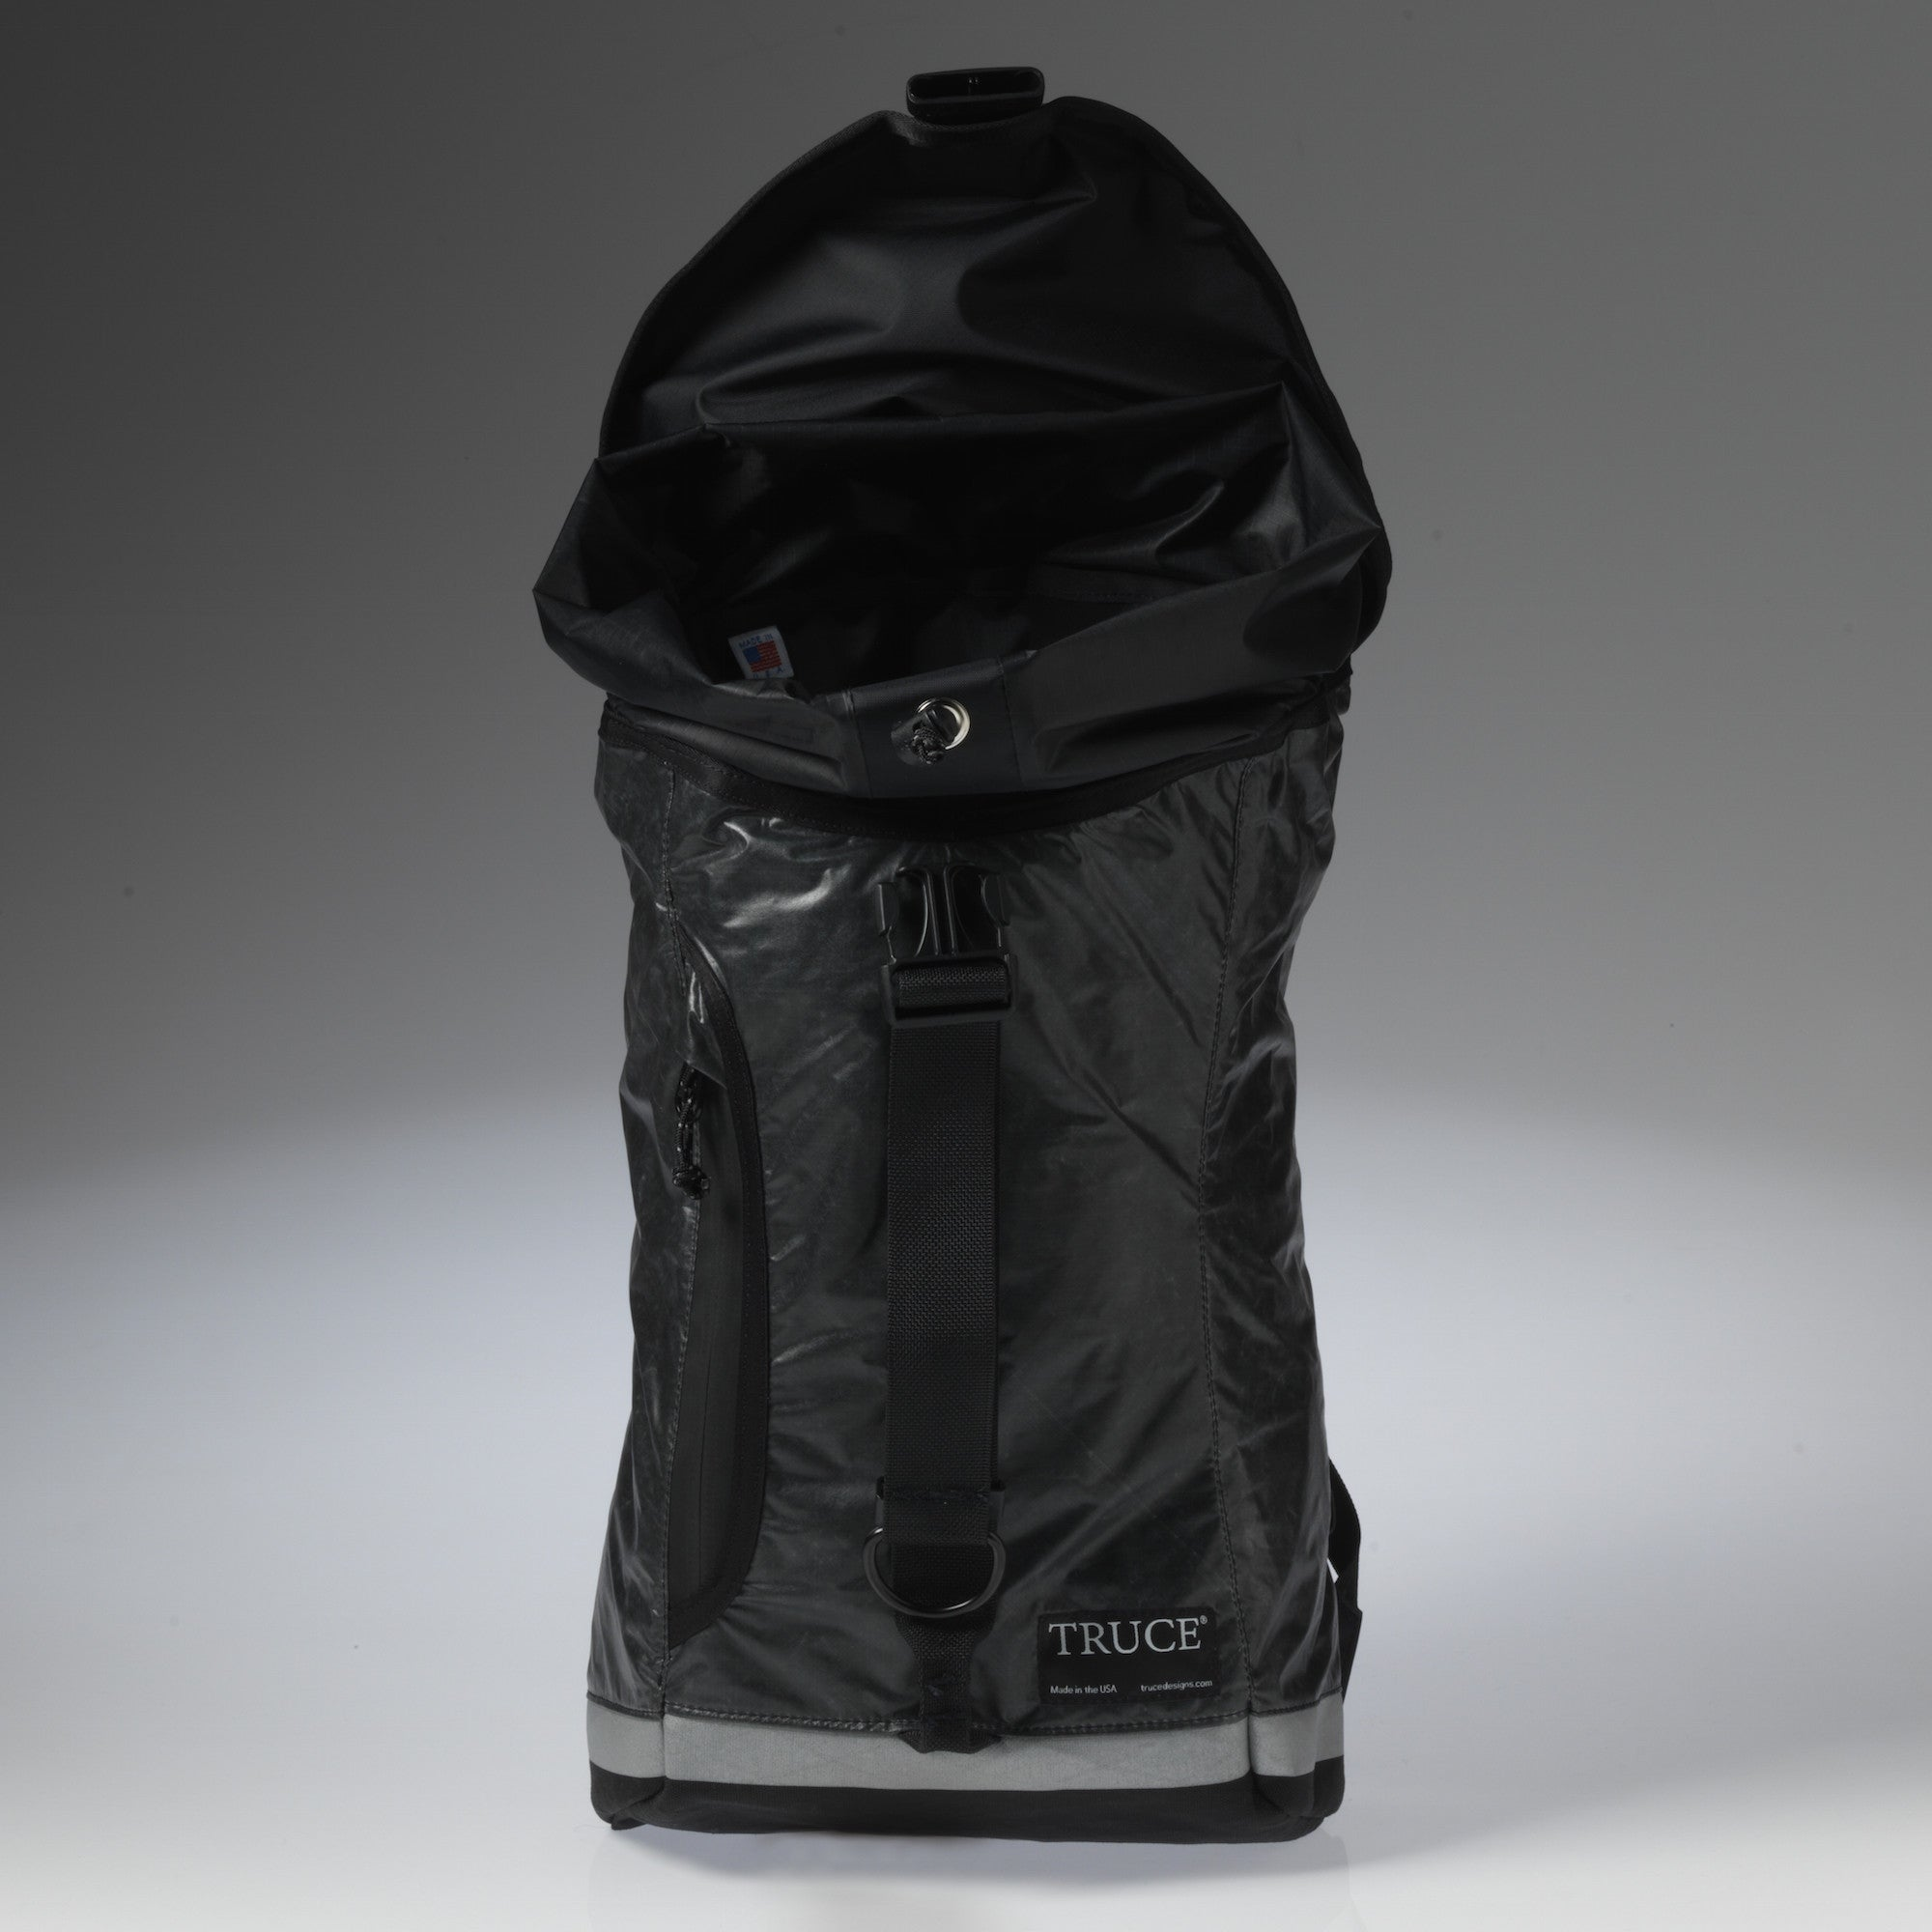 Blackout Drop Liner Backpack